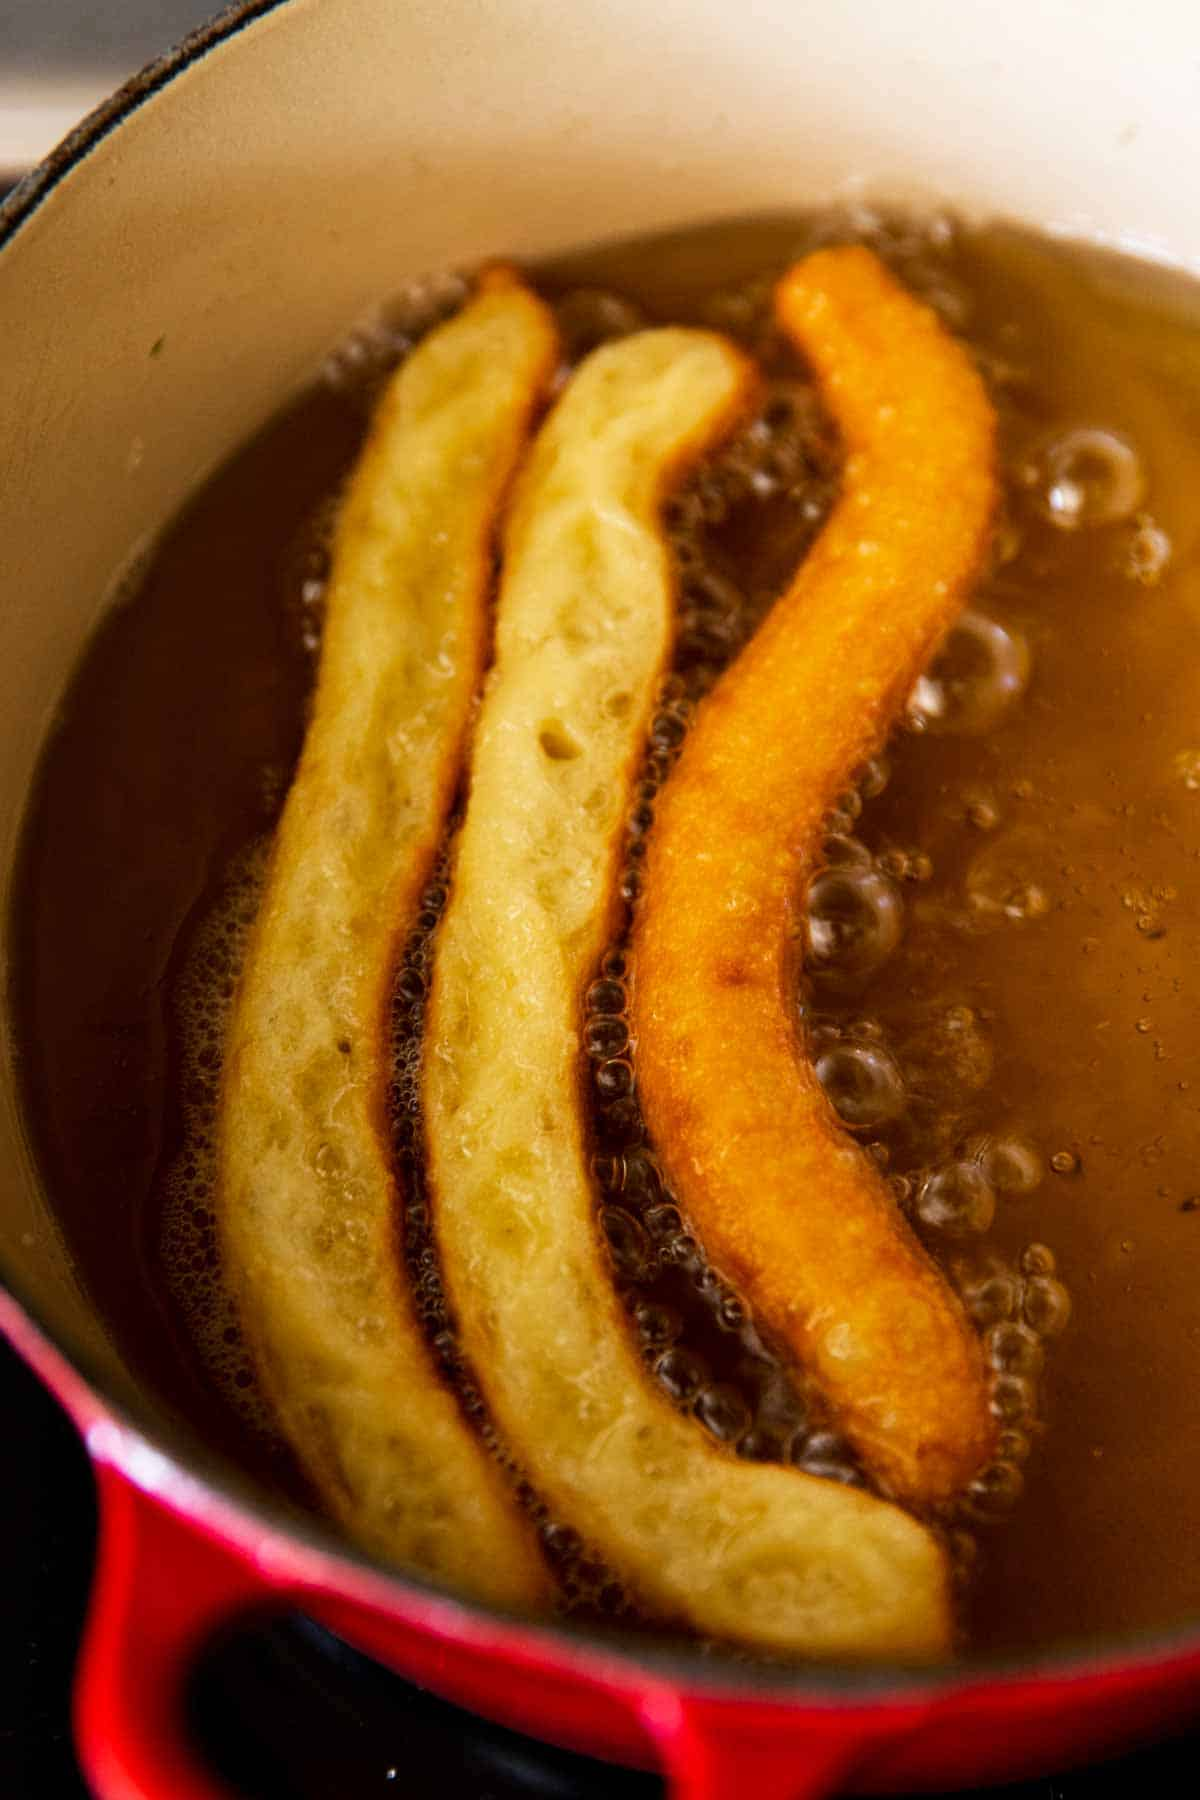 two unflipped churros and one flipped churro in simmering oil